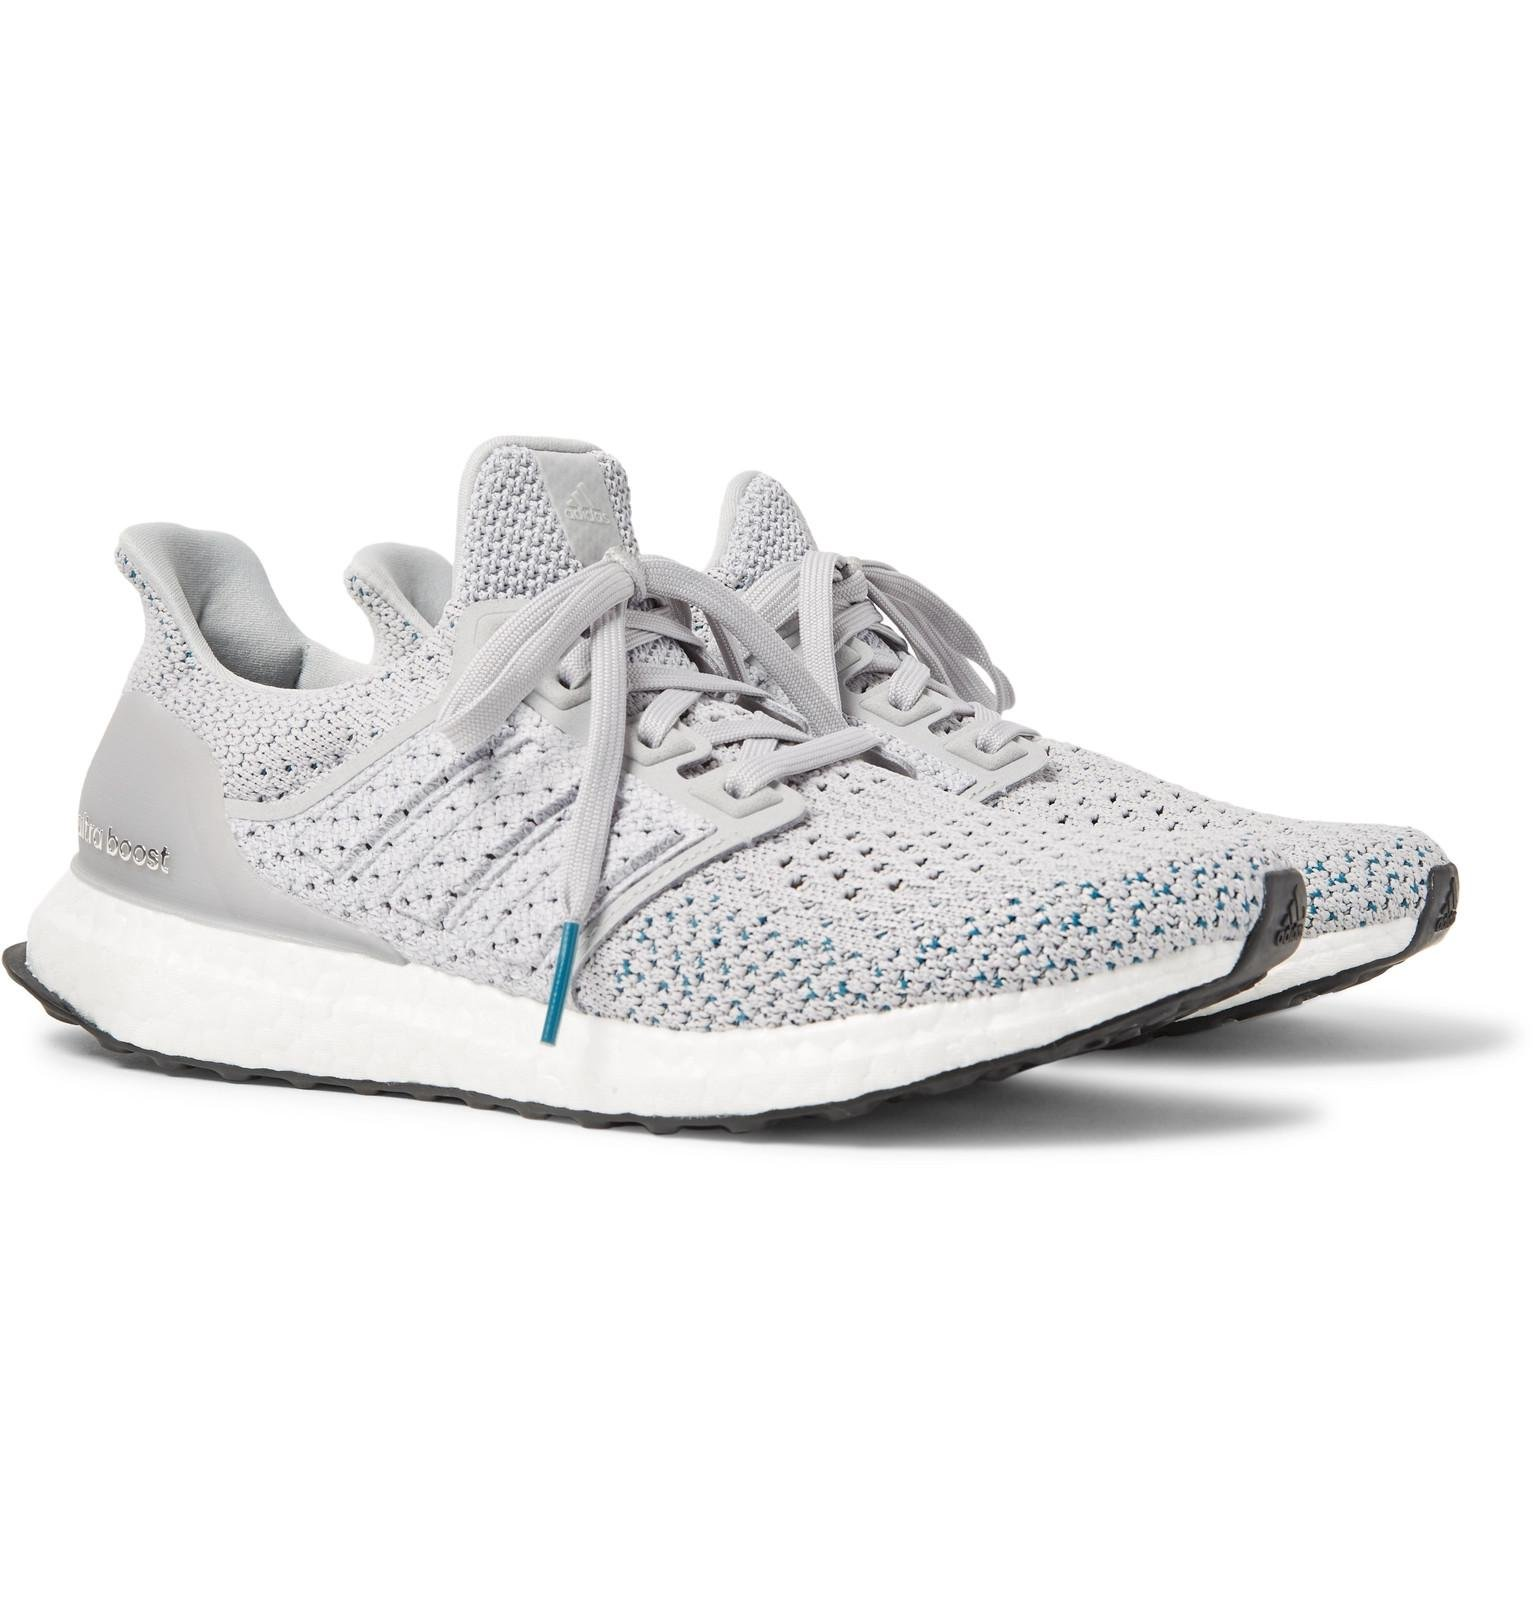 low priced 92f13 6c80c Lyst - adidas Originals Ultraboost Rubber-trimmed Climacool